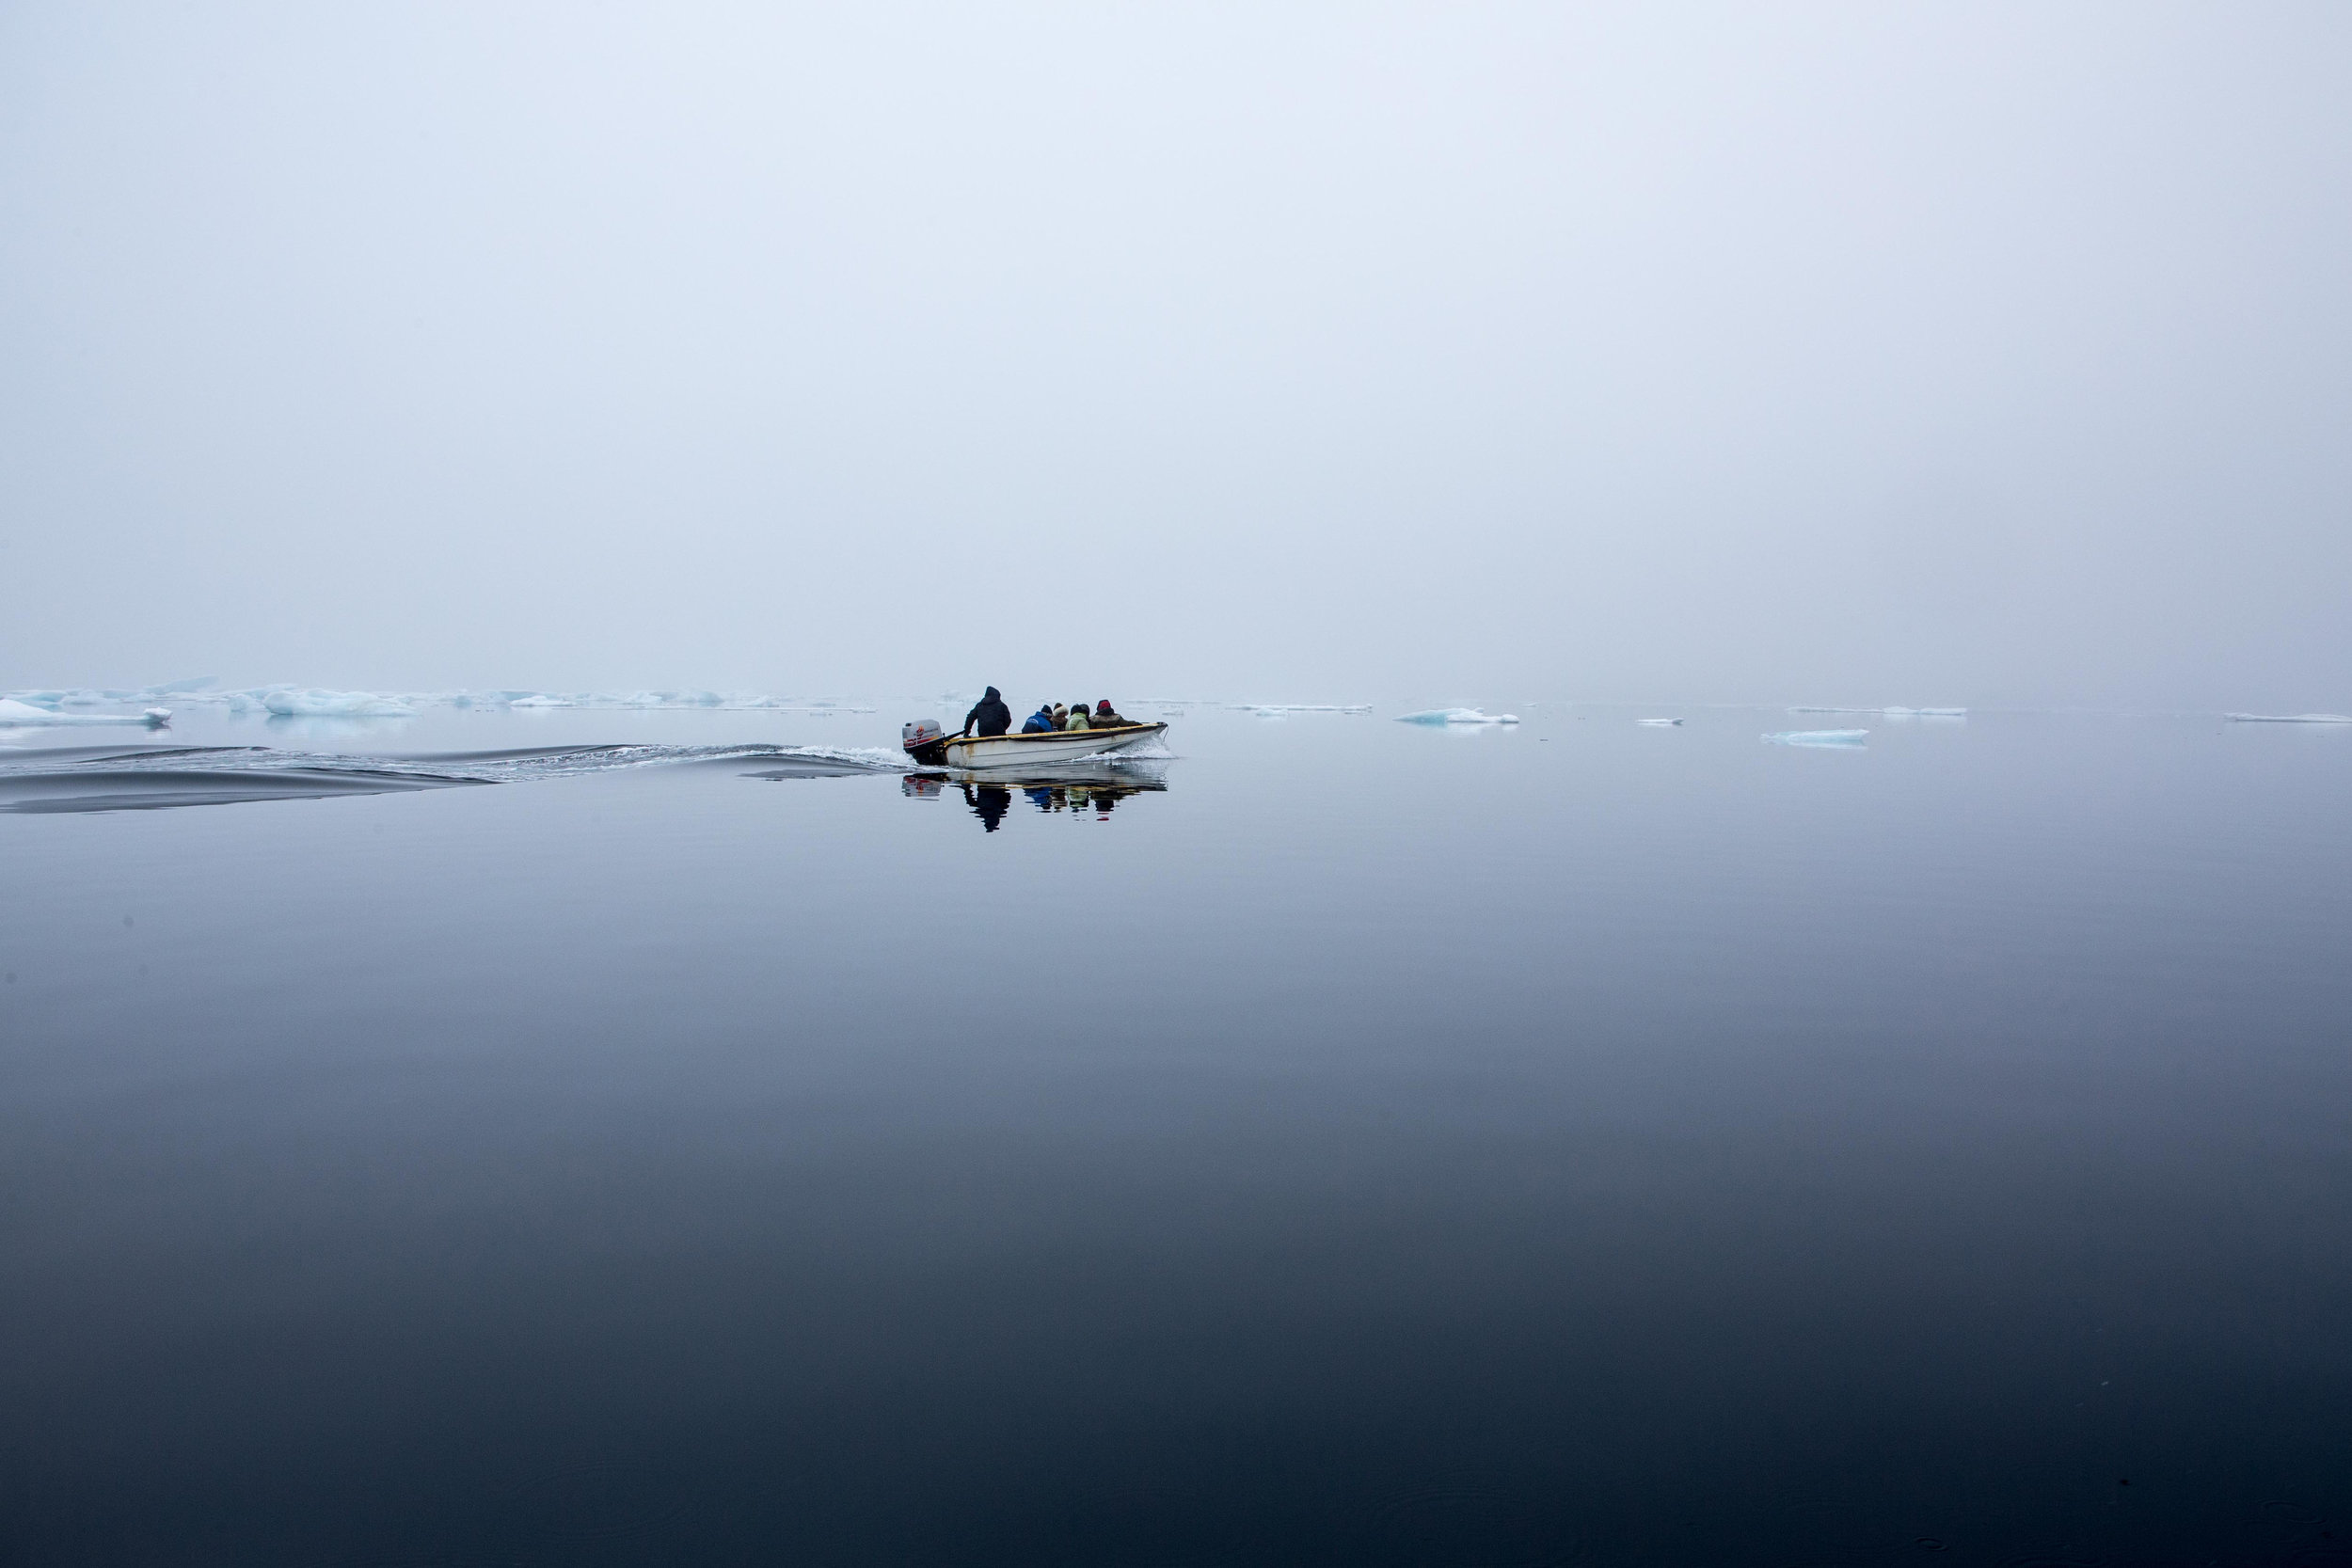 The dingy reaching open water with icebergs behind. East Greenland.